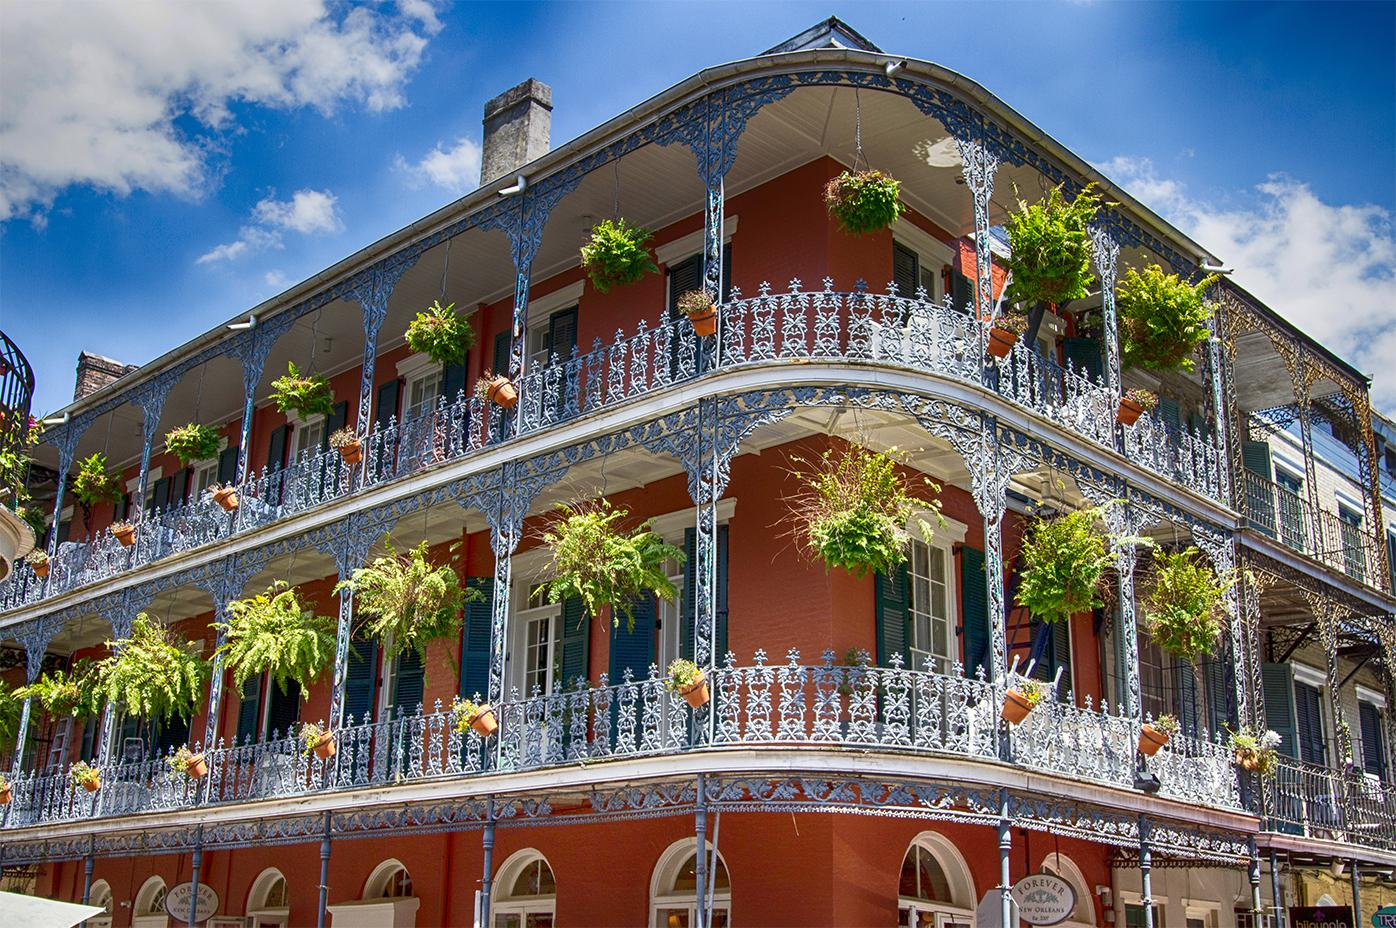 Stunning architecture in New Orleans, Louisiana